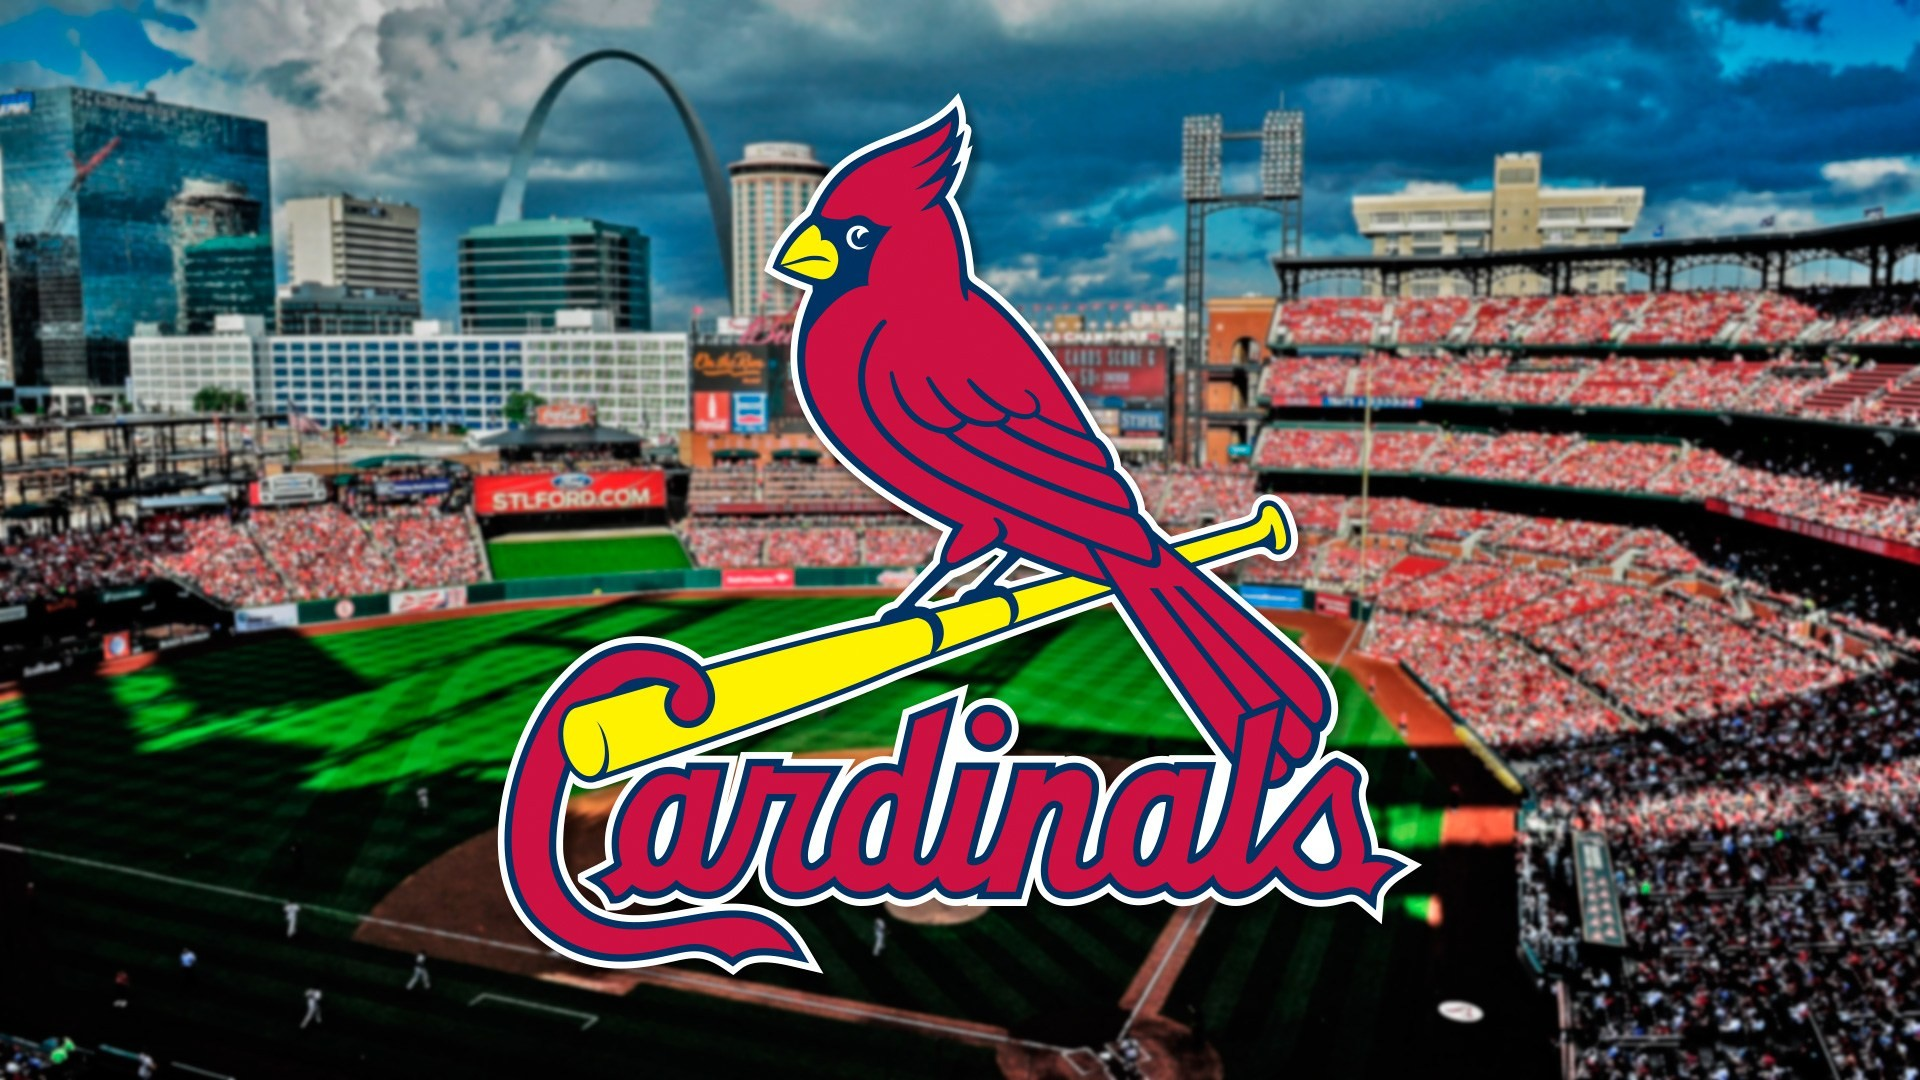 st louis cardinals iphone wallpaper 60 images